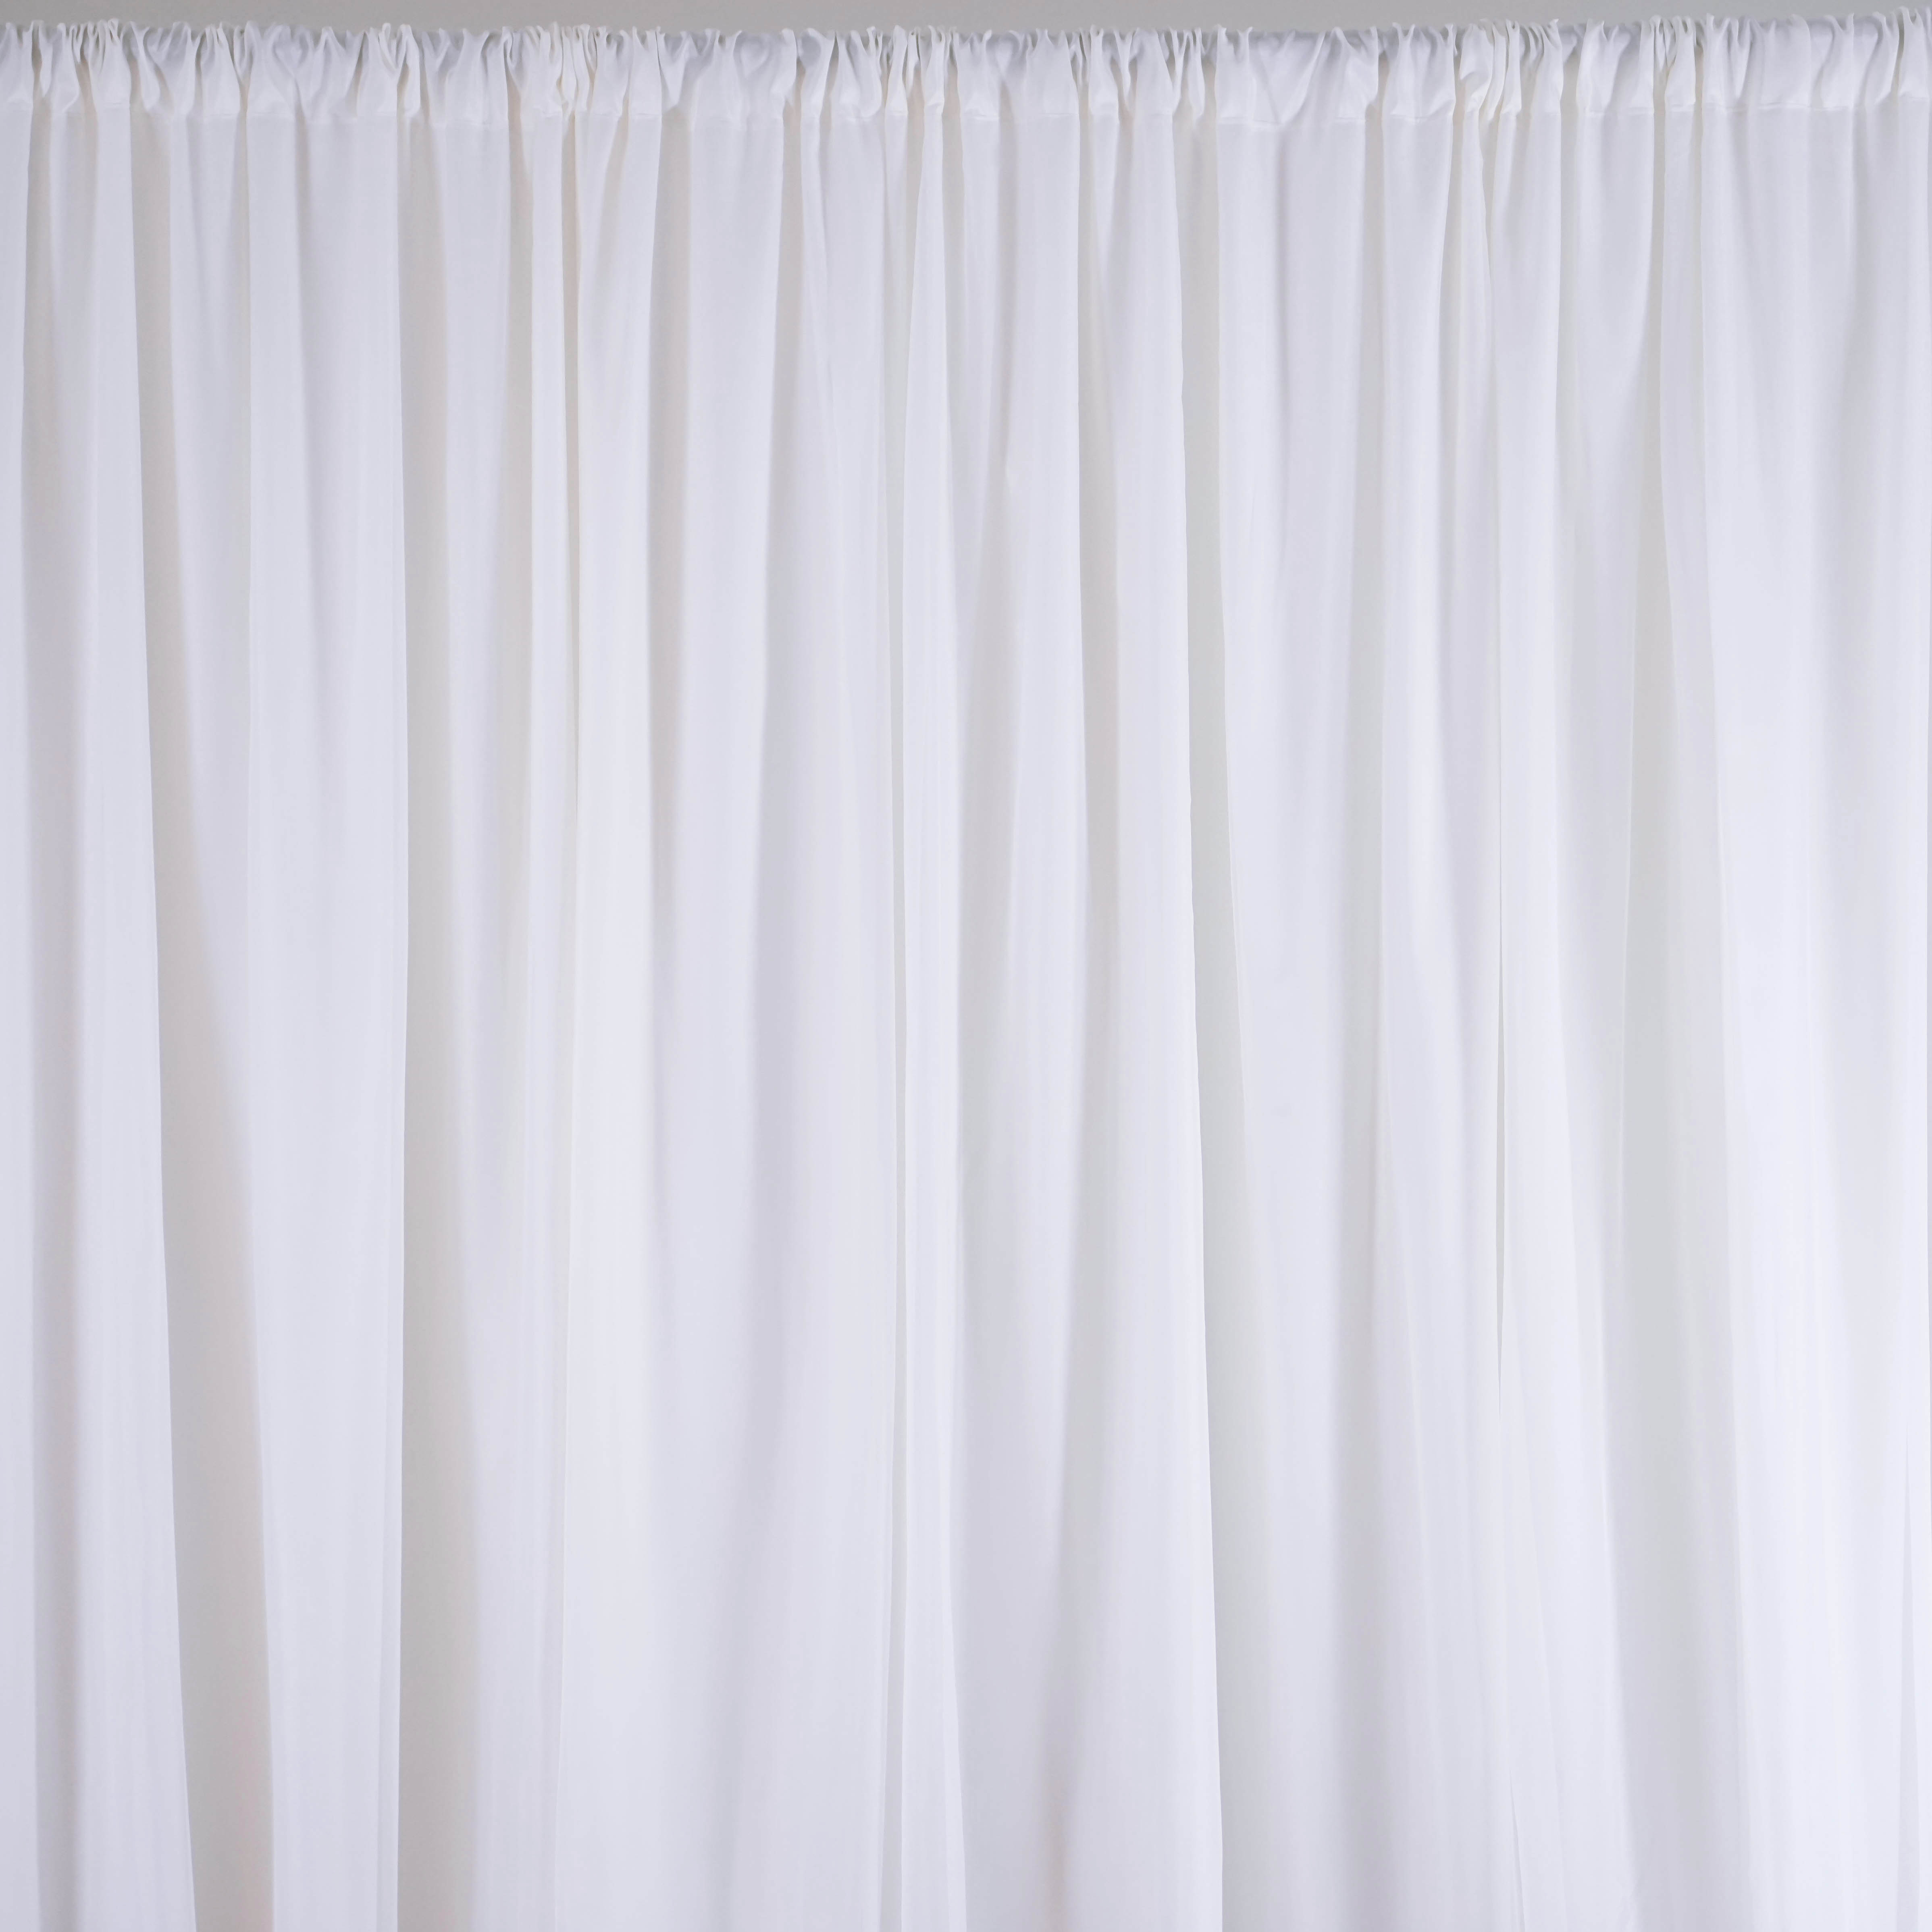 20ft x 8ft White Professional BACKDROP Photo Background Wedding Decorations : eBay